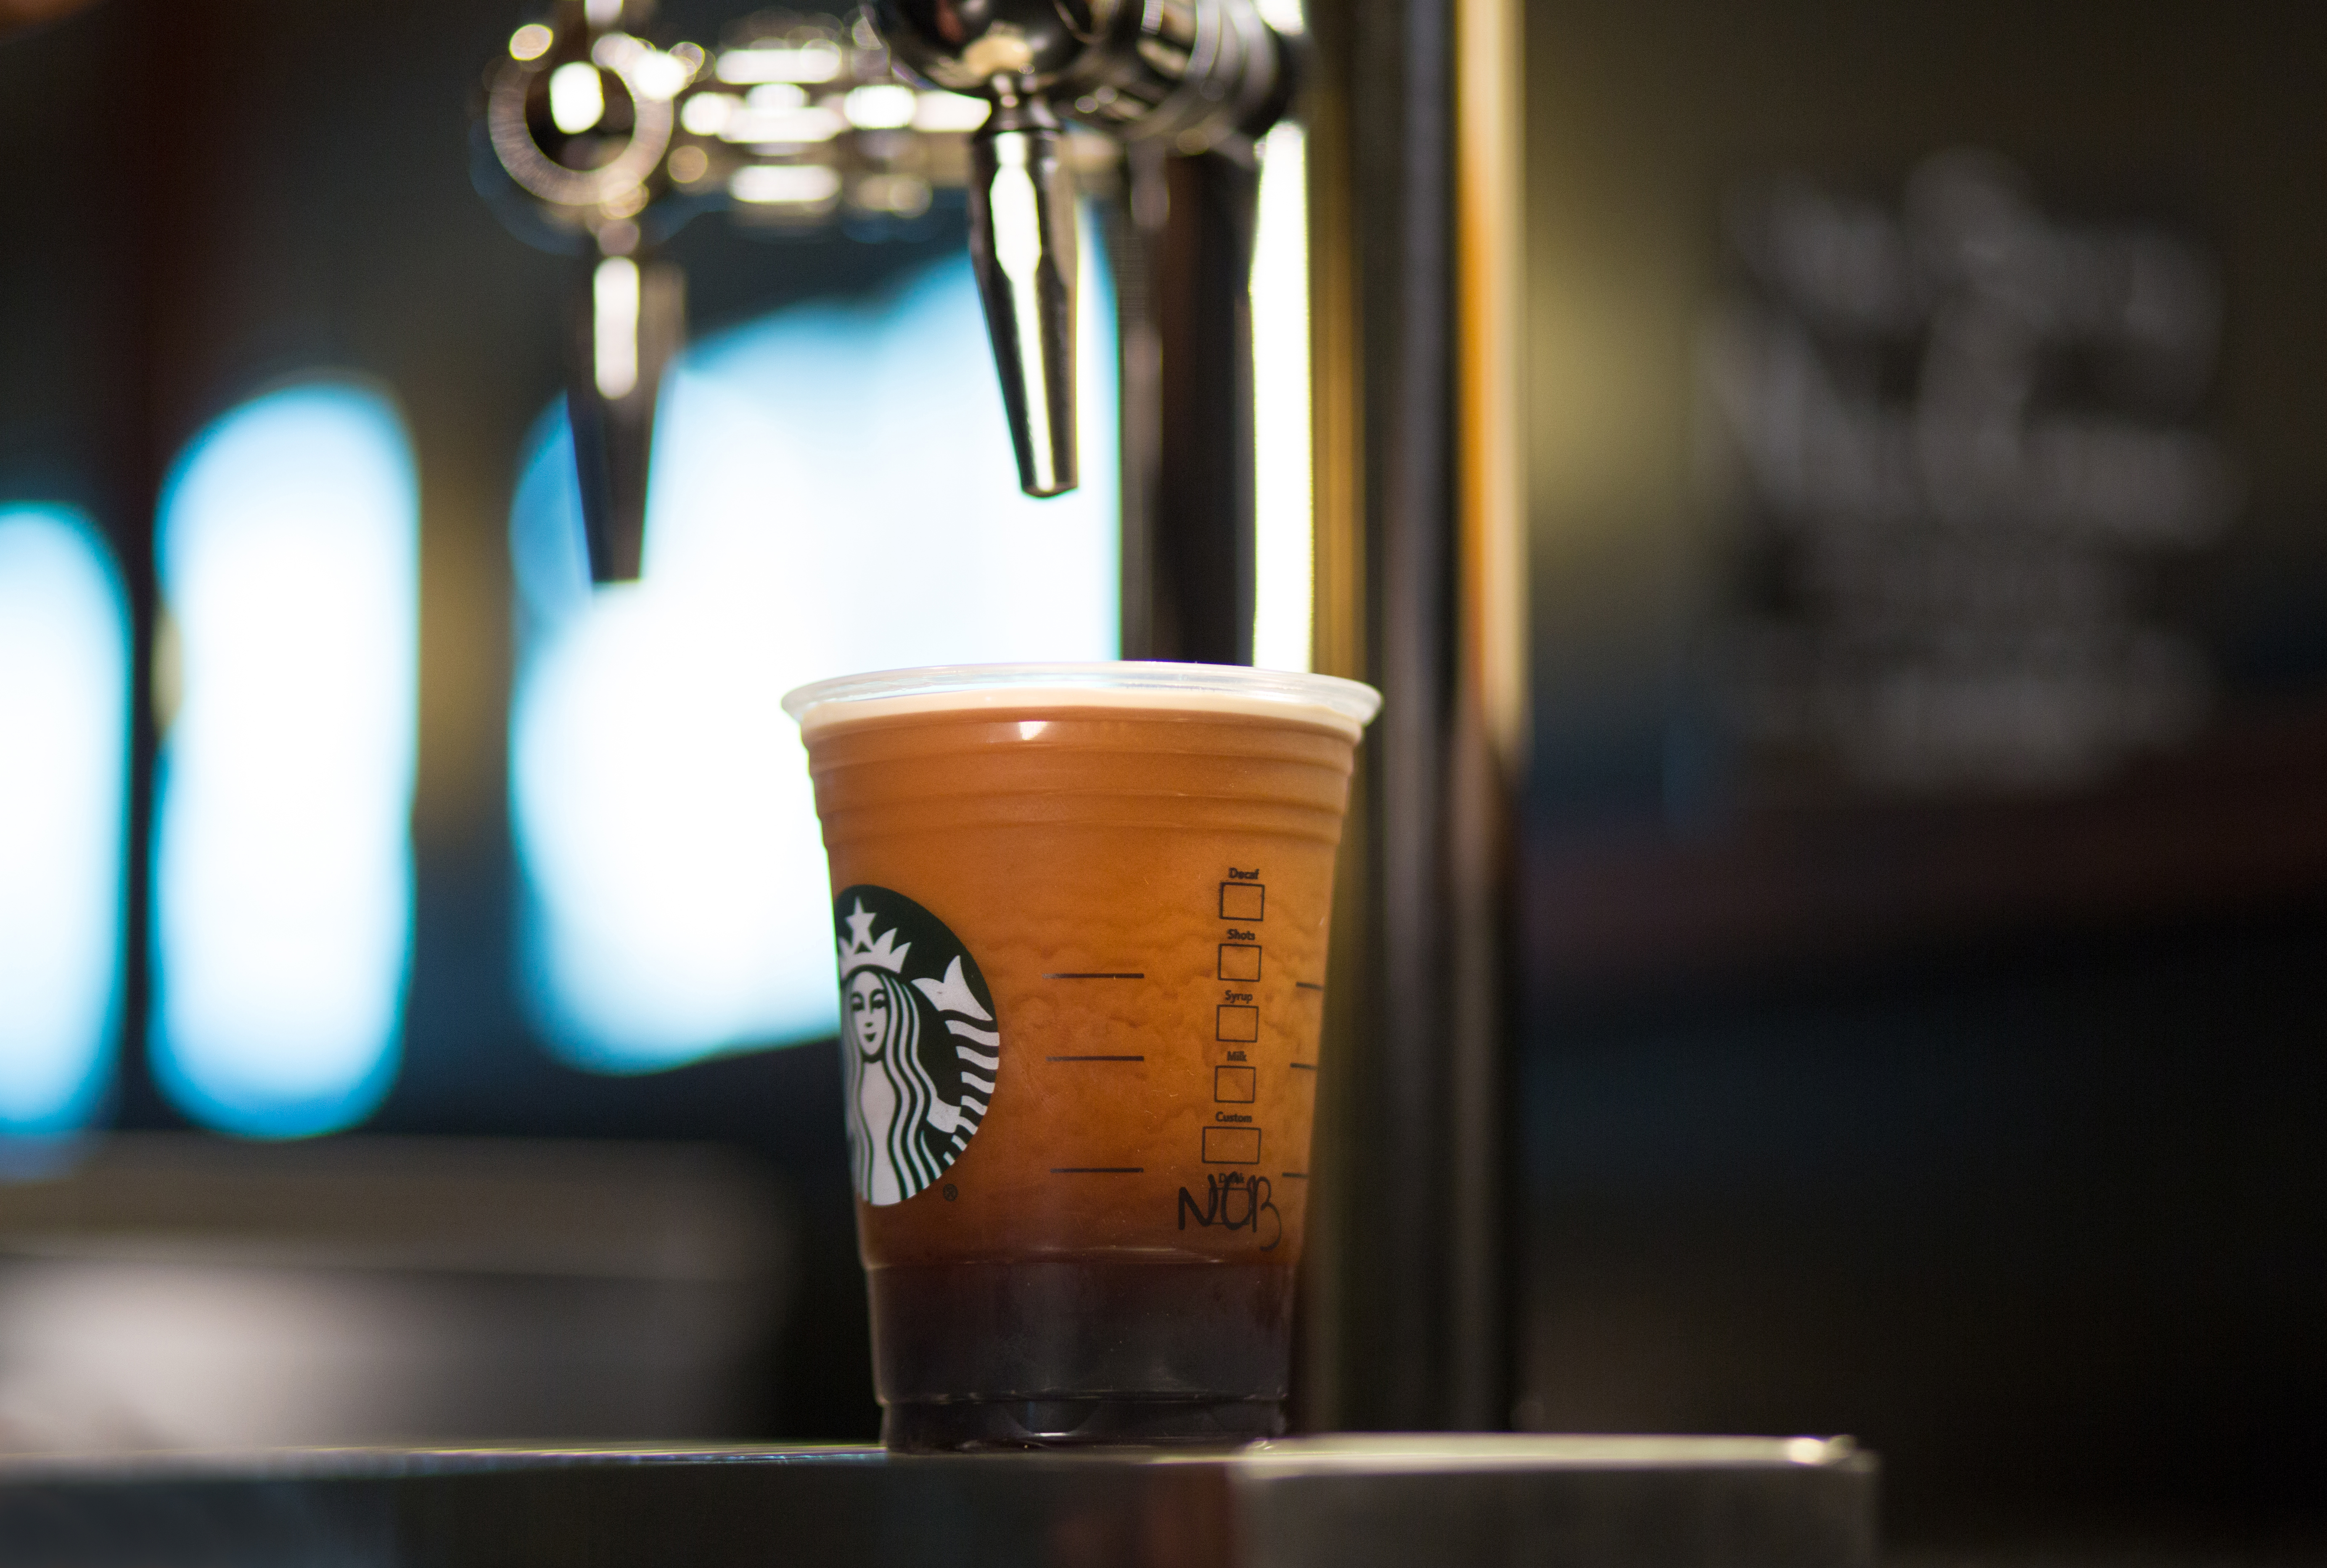 Starbucks Nitro Cold Brew photographed at the Olive Way Starbucks store in Seattle. Photographed on Tuesday, May 24, 2016.